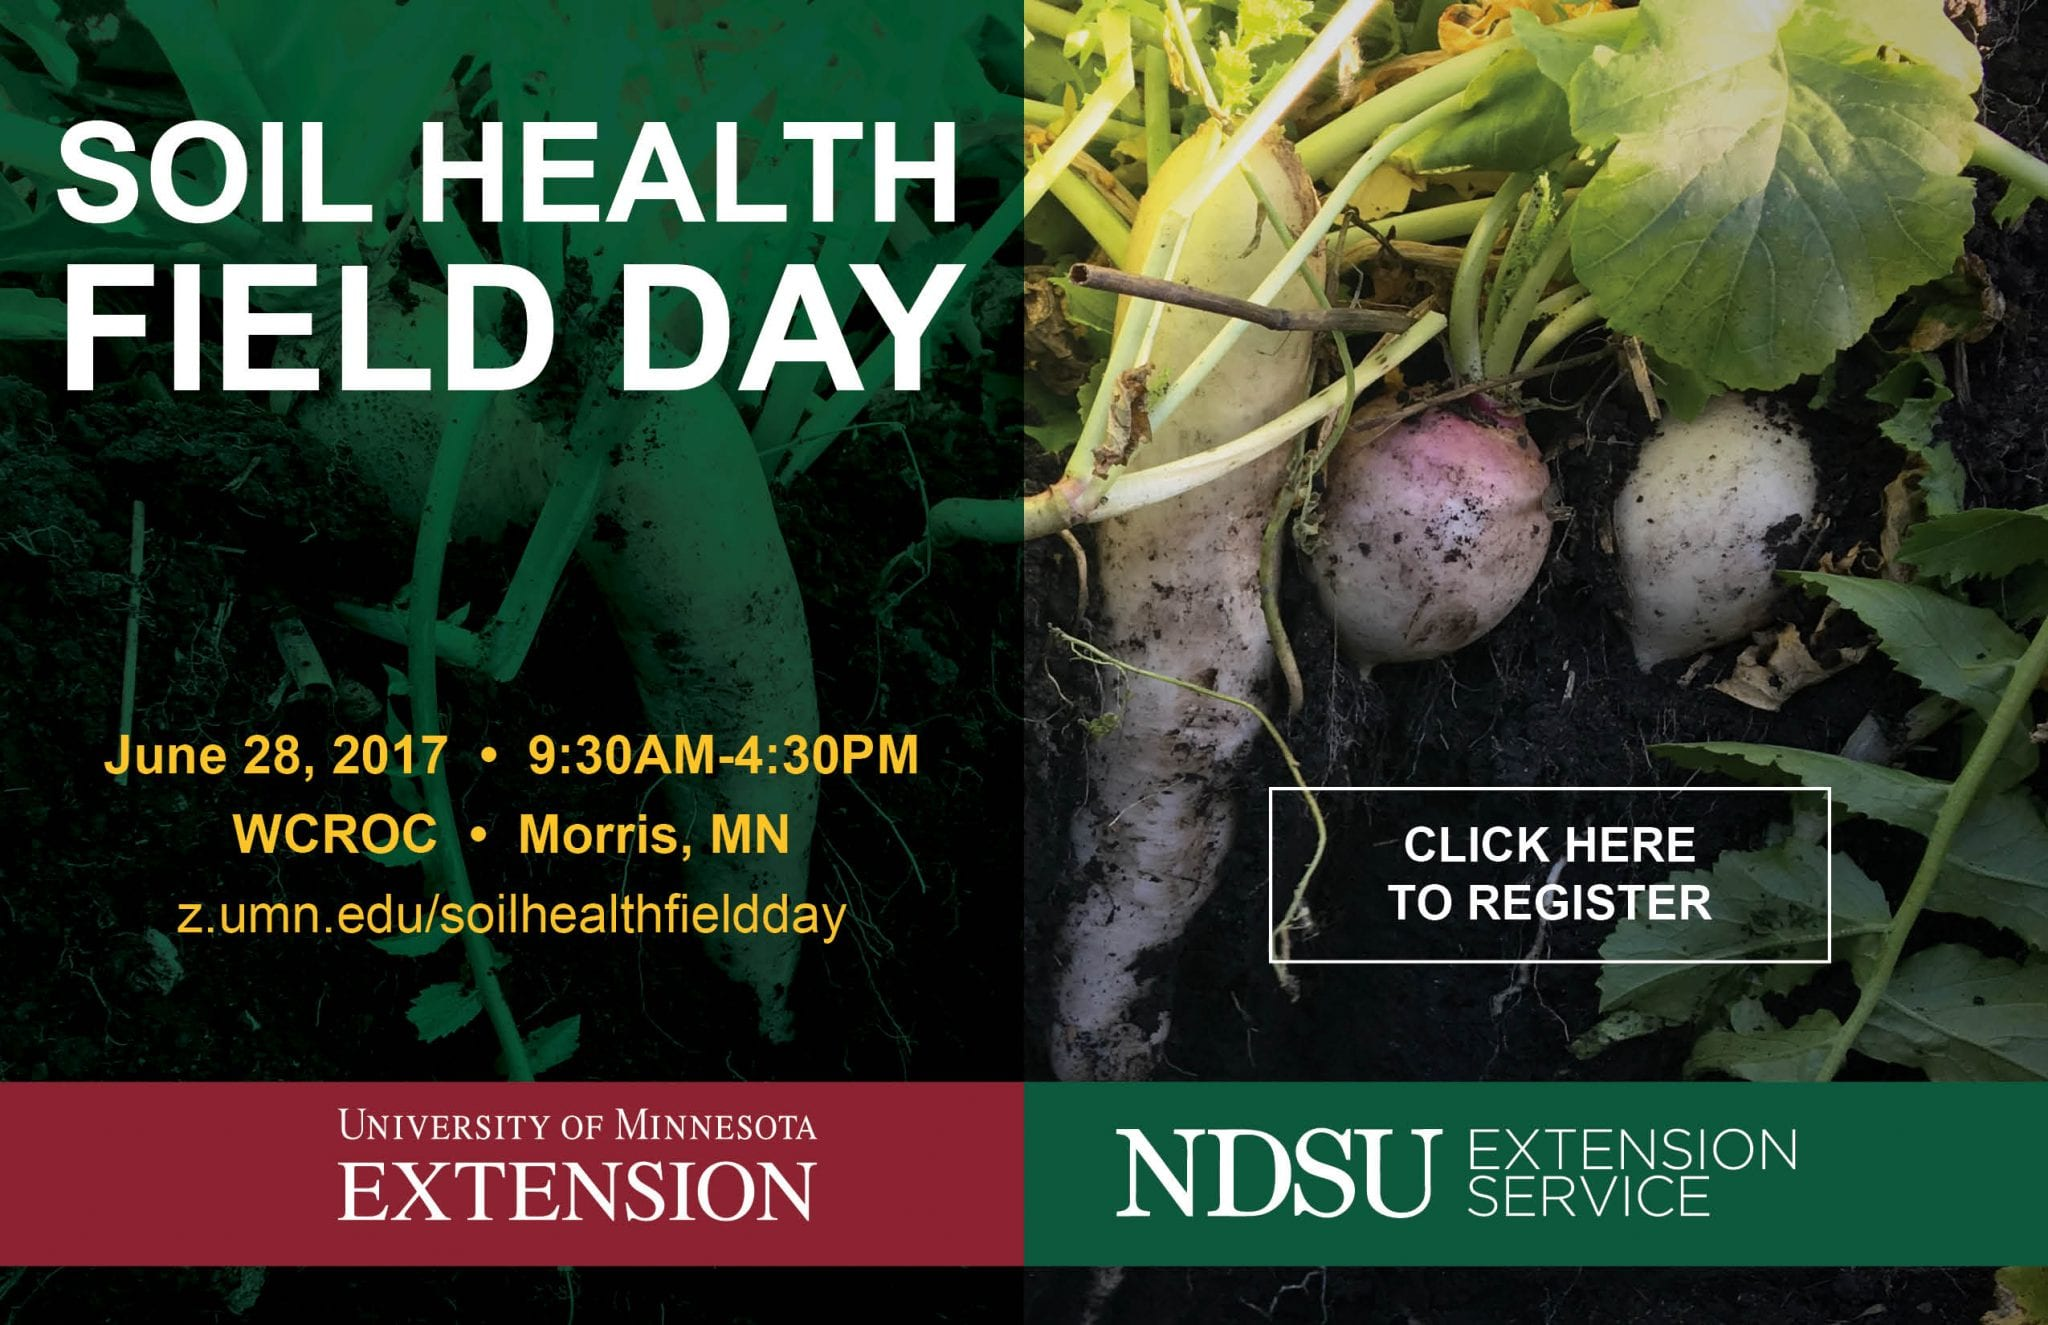 SoilHealth_FieldDay_Graphic